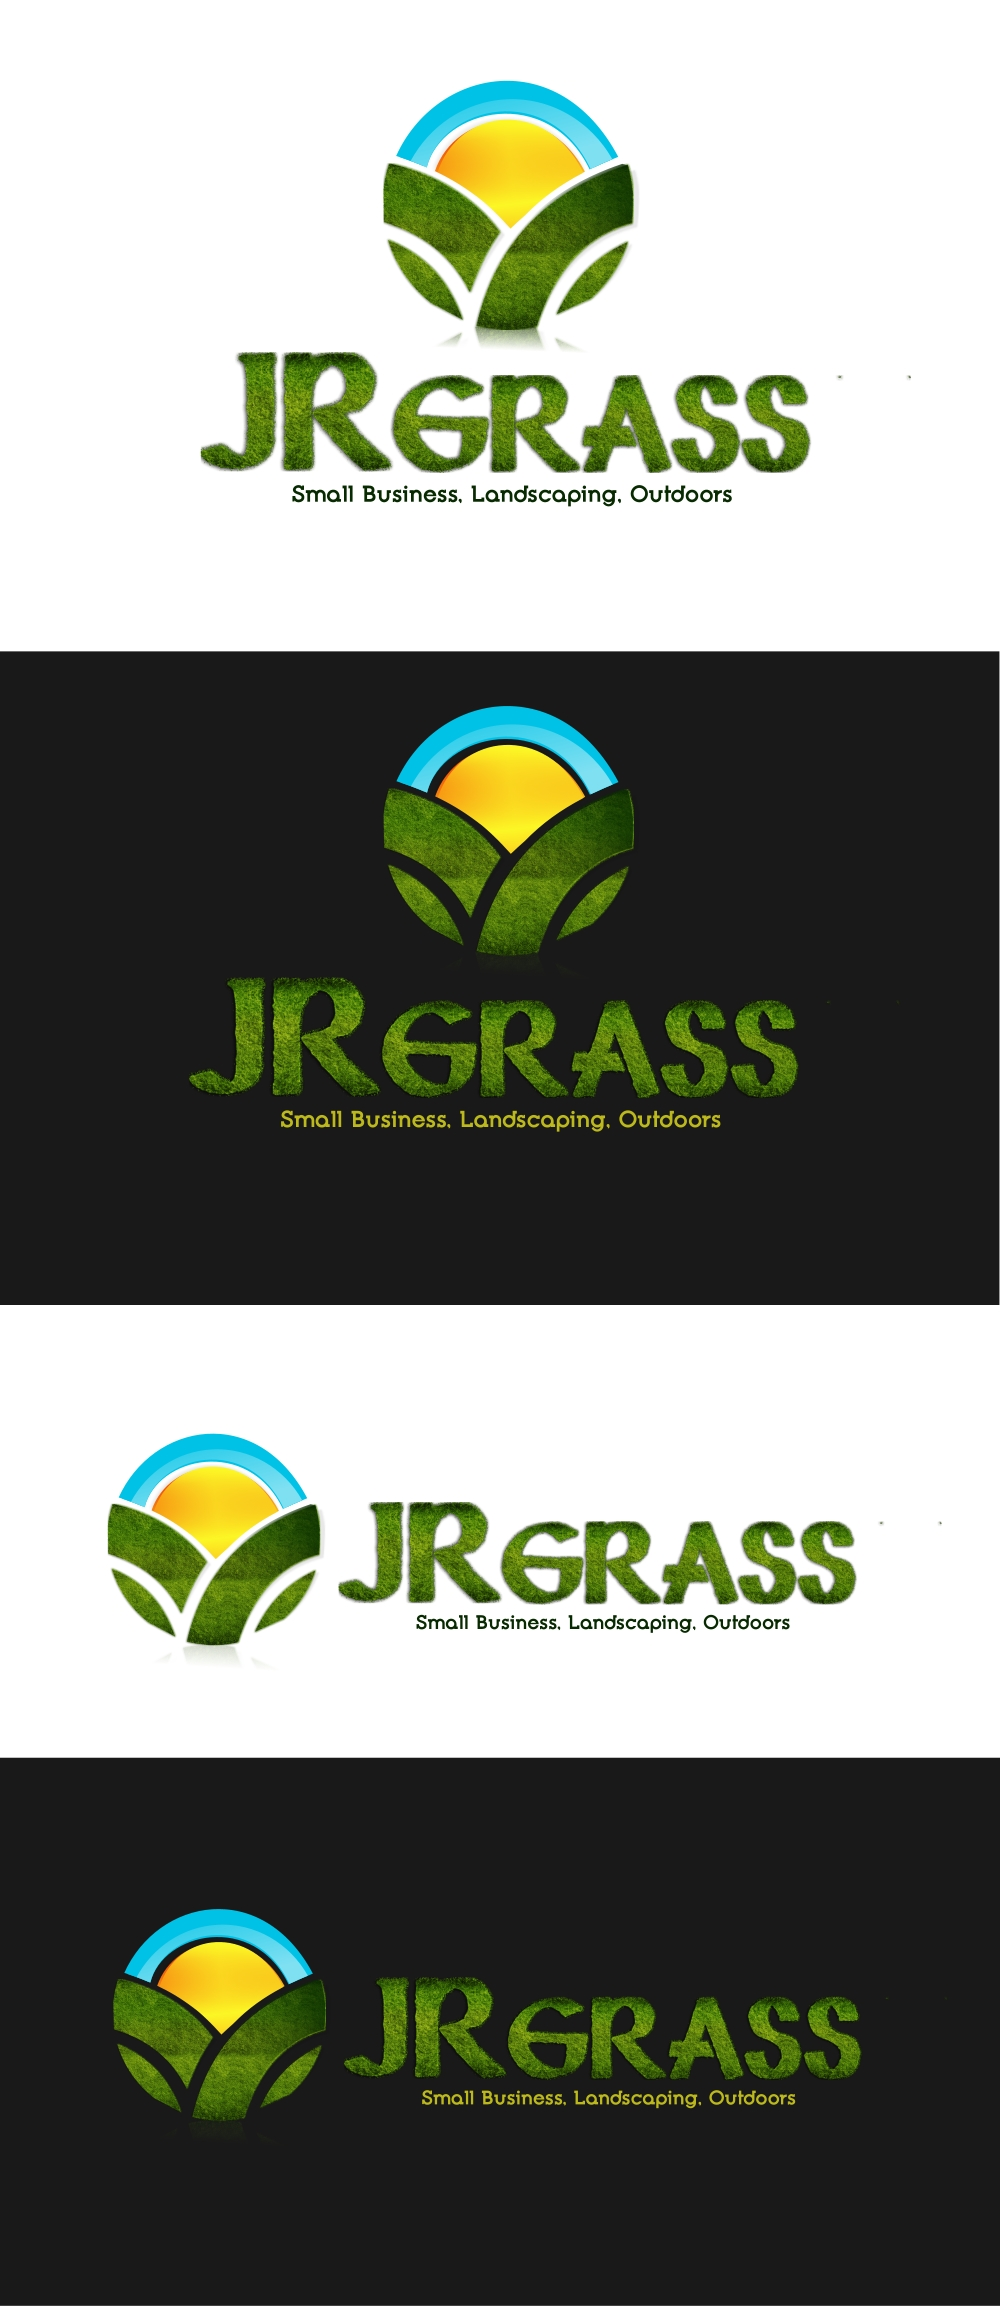 Logo Design by Private User - Entry No. 32 in the Logo Design Contest Inspiring Logo Design for JR Grass.